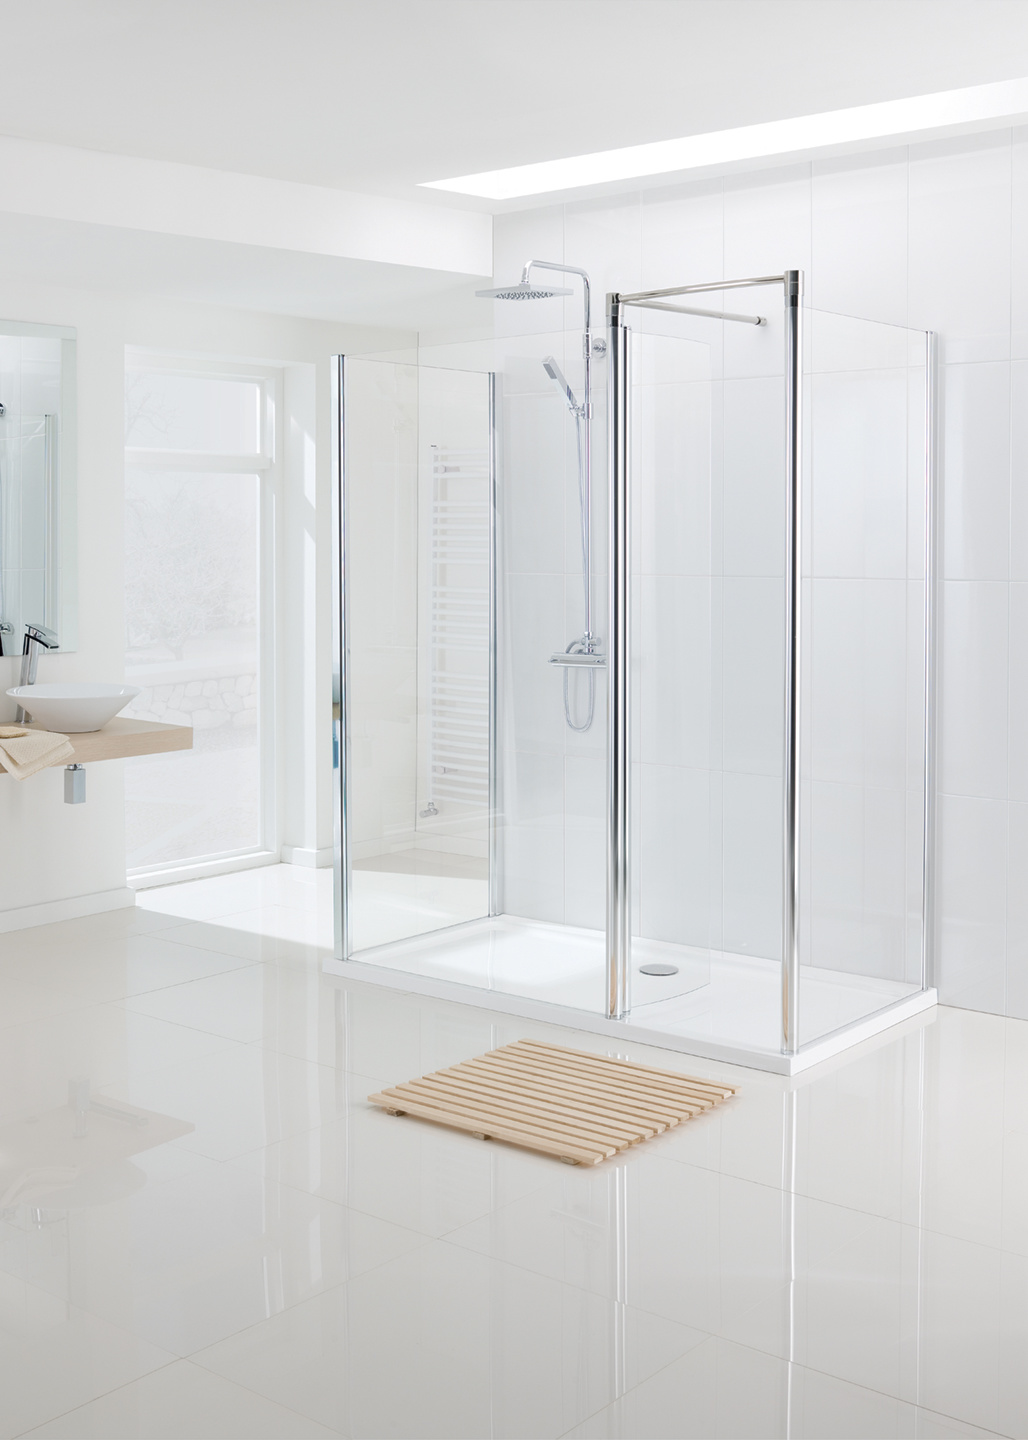 semi-frameless Walk In shower enclosure